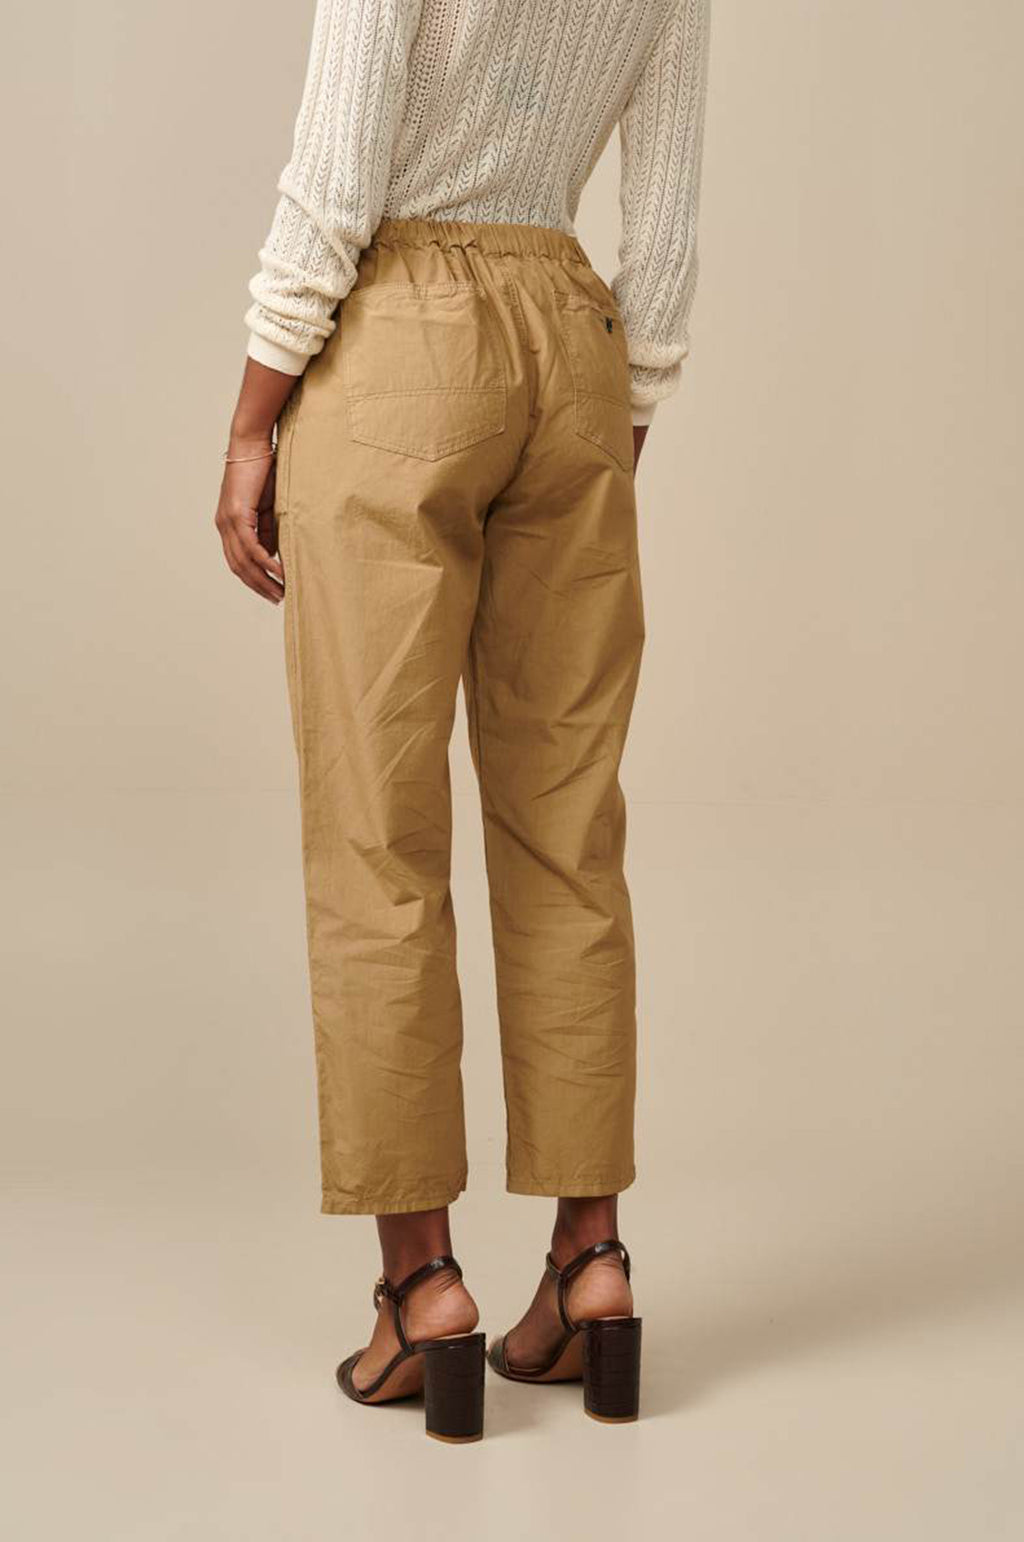 Pizzy Pants in Clay